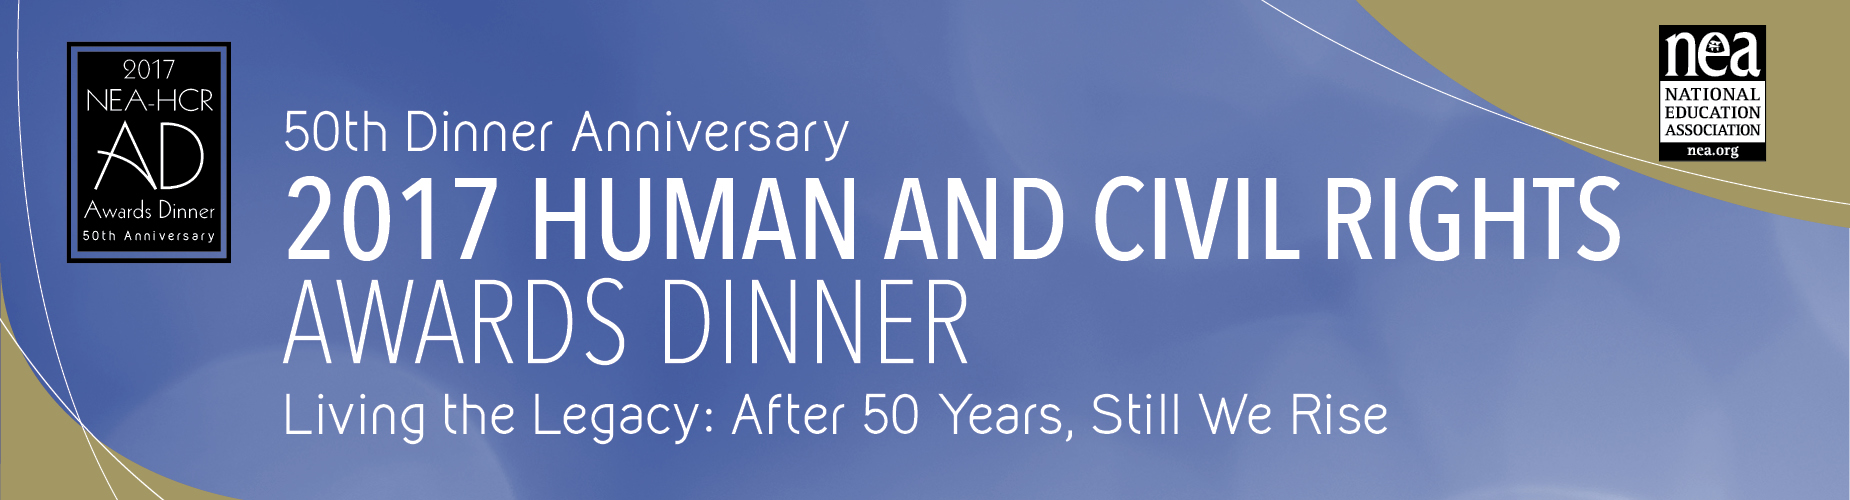 2017 Human and Civil Rights Awards Dinner Ticket Ordering System